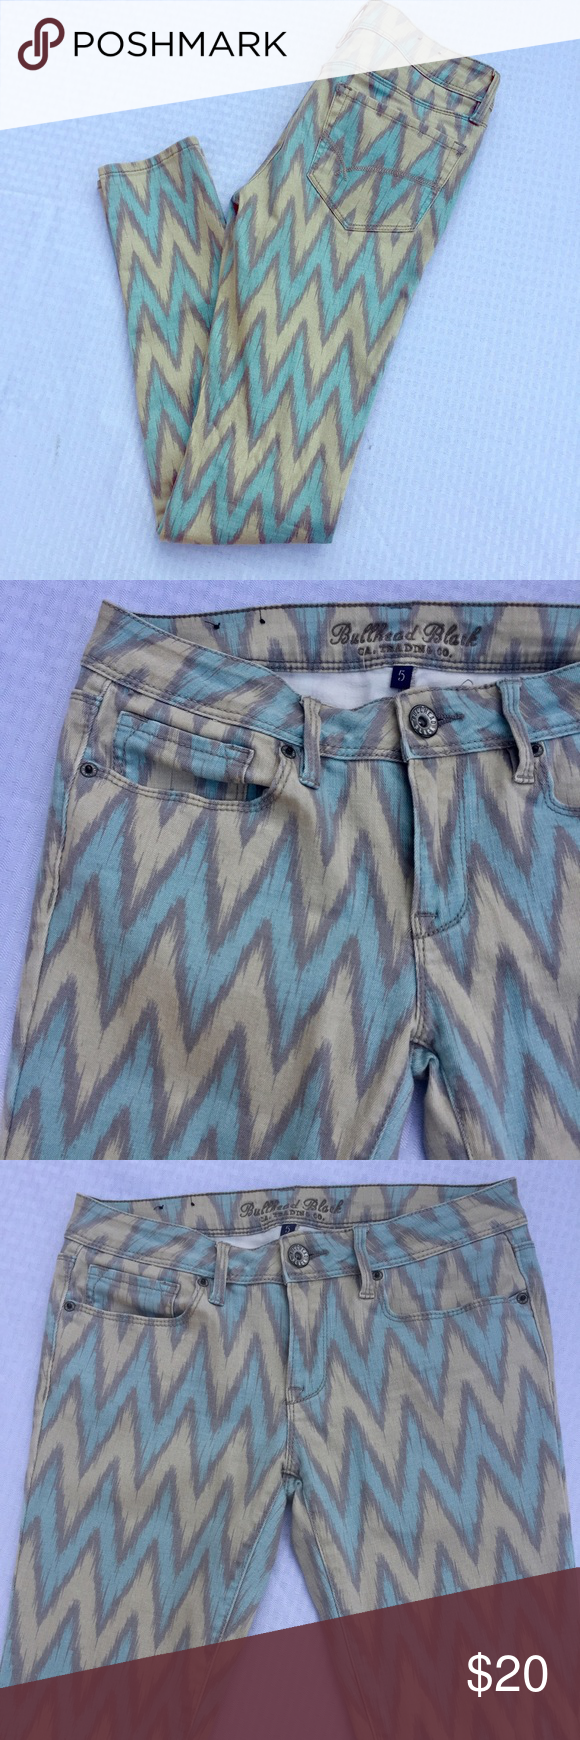 Pastel Colored Chevron Print Skinny Jeans Wear these low rise skinnies with a long knit sweater and tan suede booties. Size 5, runs small. Bullhead Black CA. Trading Co. Jeans Skinny